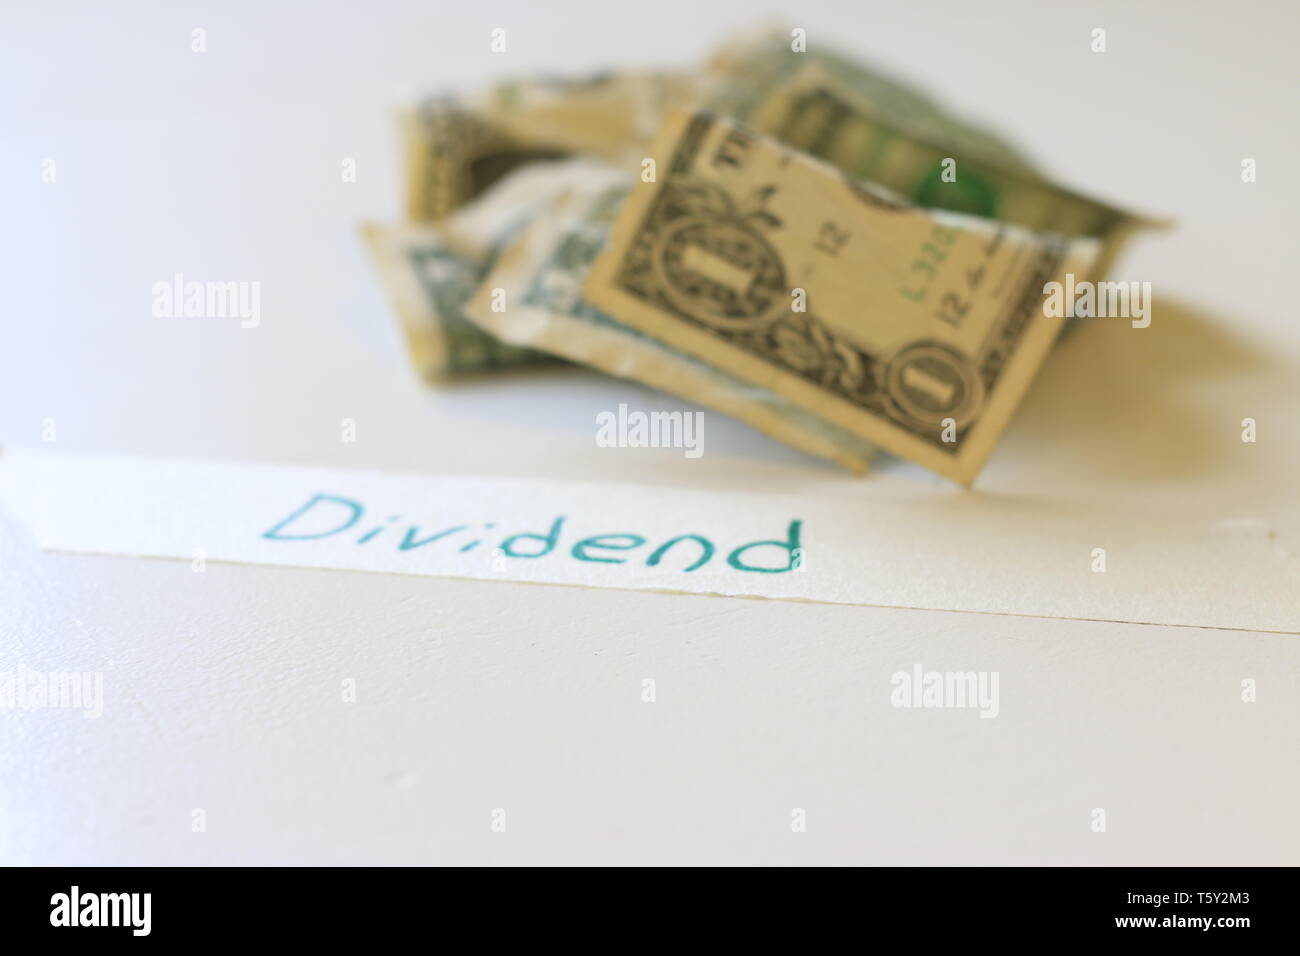 The word dividend next to US 1 dollar bills. Concept of dividend payments and stocks - Stock Image